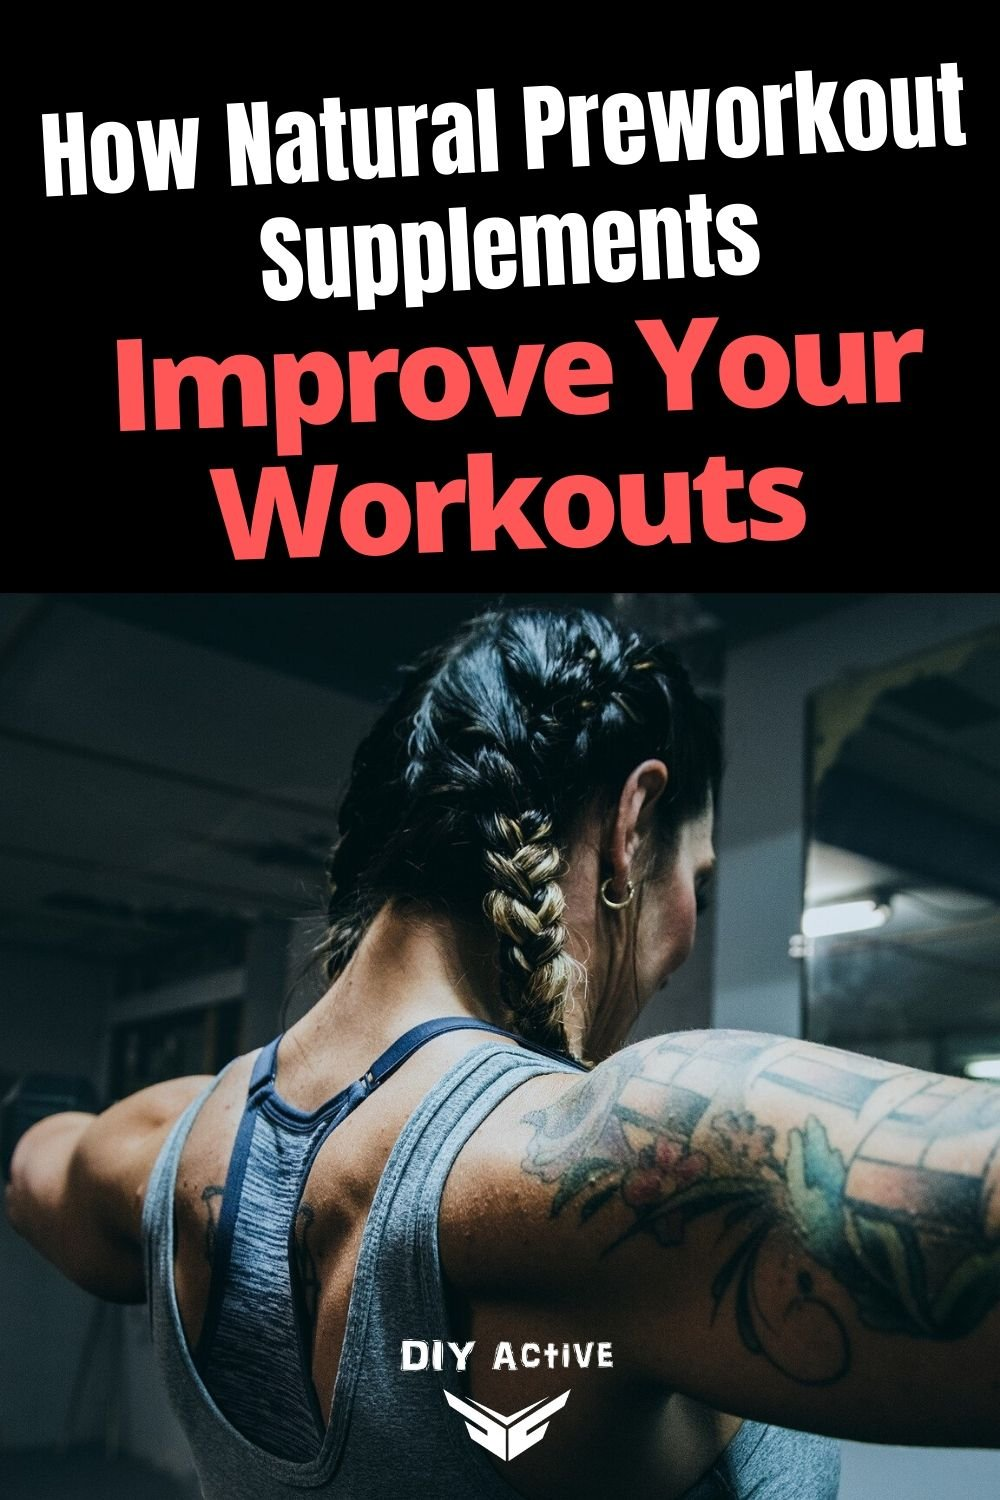 How Natural Preworkout Supplements Can Improve Your Workouts